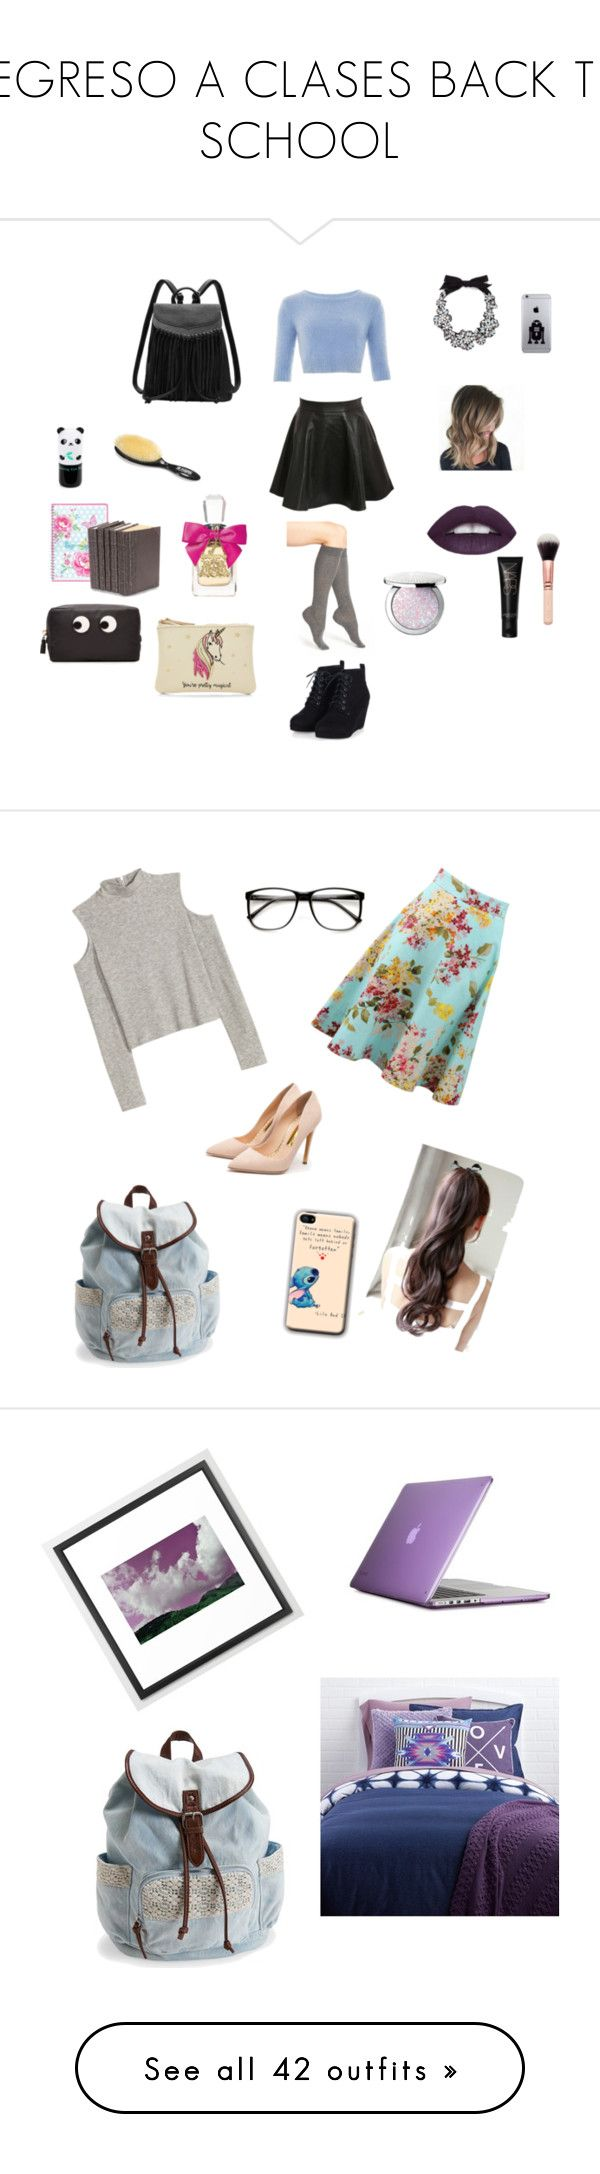 """REGRESO A CLASES BACK TO SCHOOL"" by karla-renne on Polyvore featuring moda, J.Crew, Nordstrom, Pilot, Tony Moly, Guerlain, Juicy Couture, GreenGate, Decorative Leather Books y Anya Hindmarch"